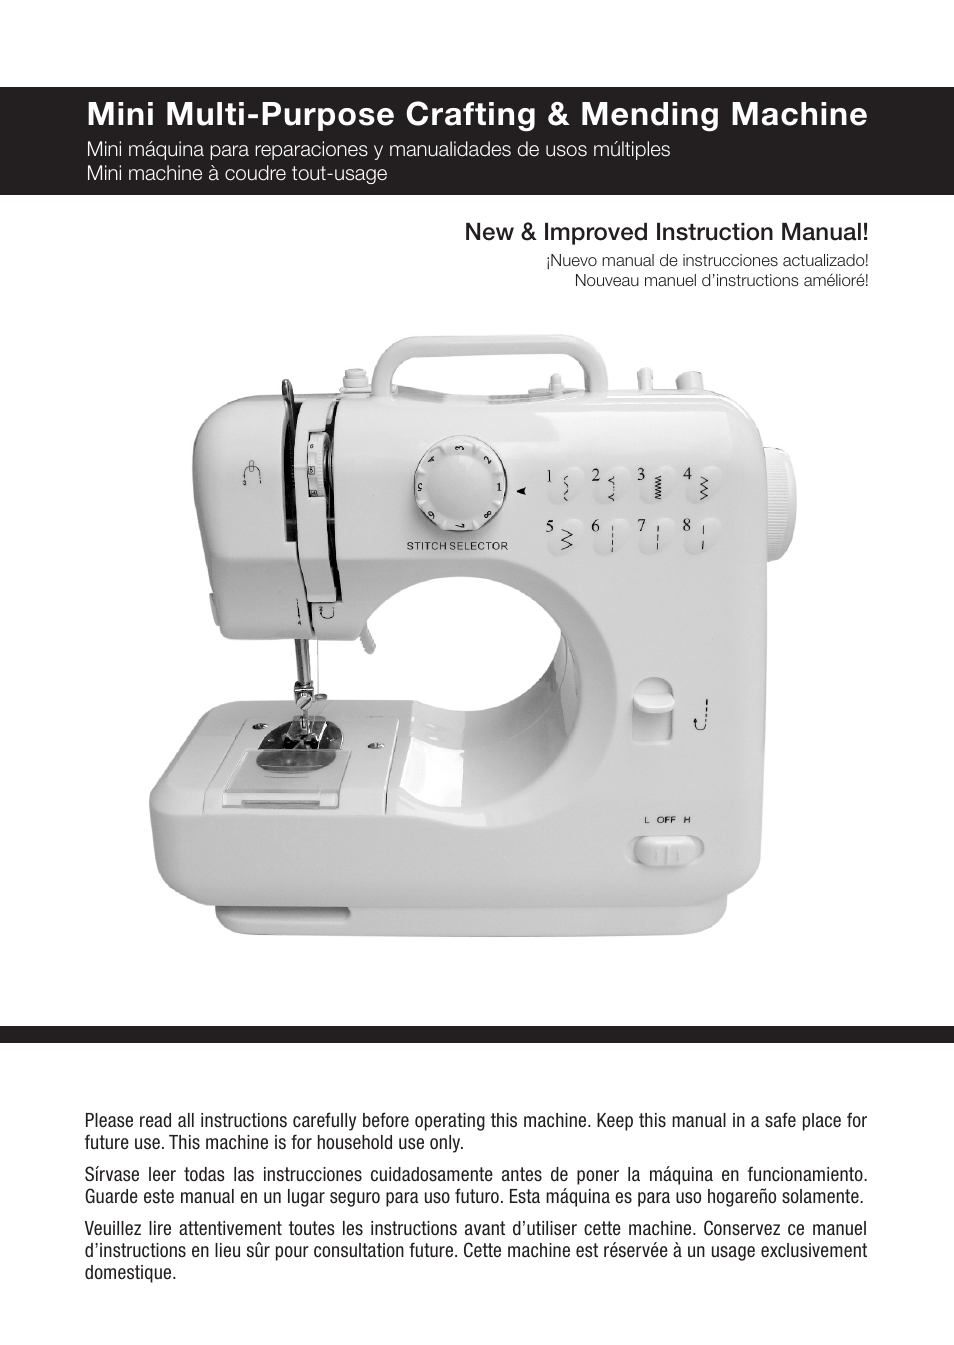 singer pixie user manual 24 pages also for pixie plus rh manualsdir com User Manuals Riccar 510 Sewing Machine Brother Sewing Machine User Manual